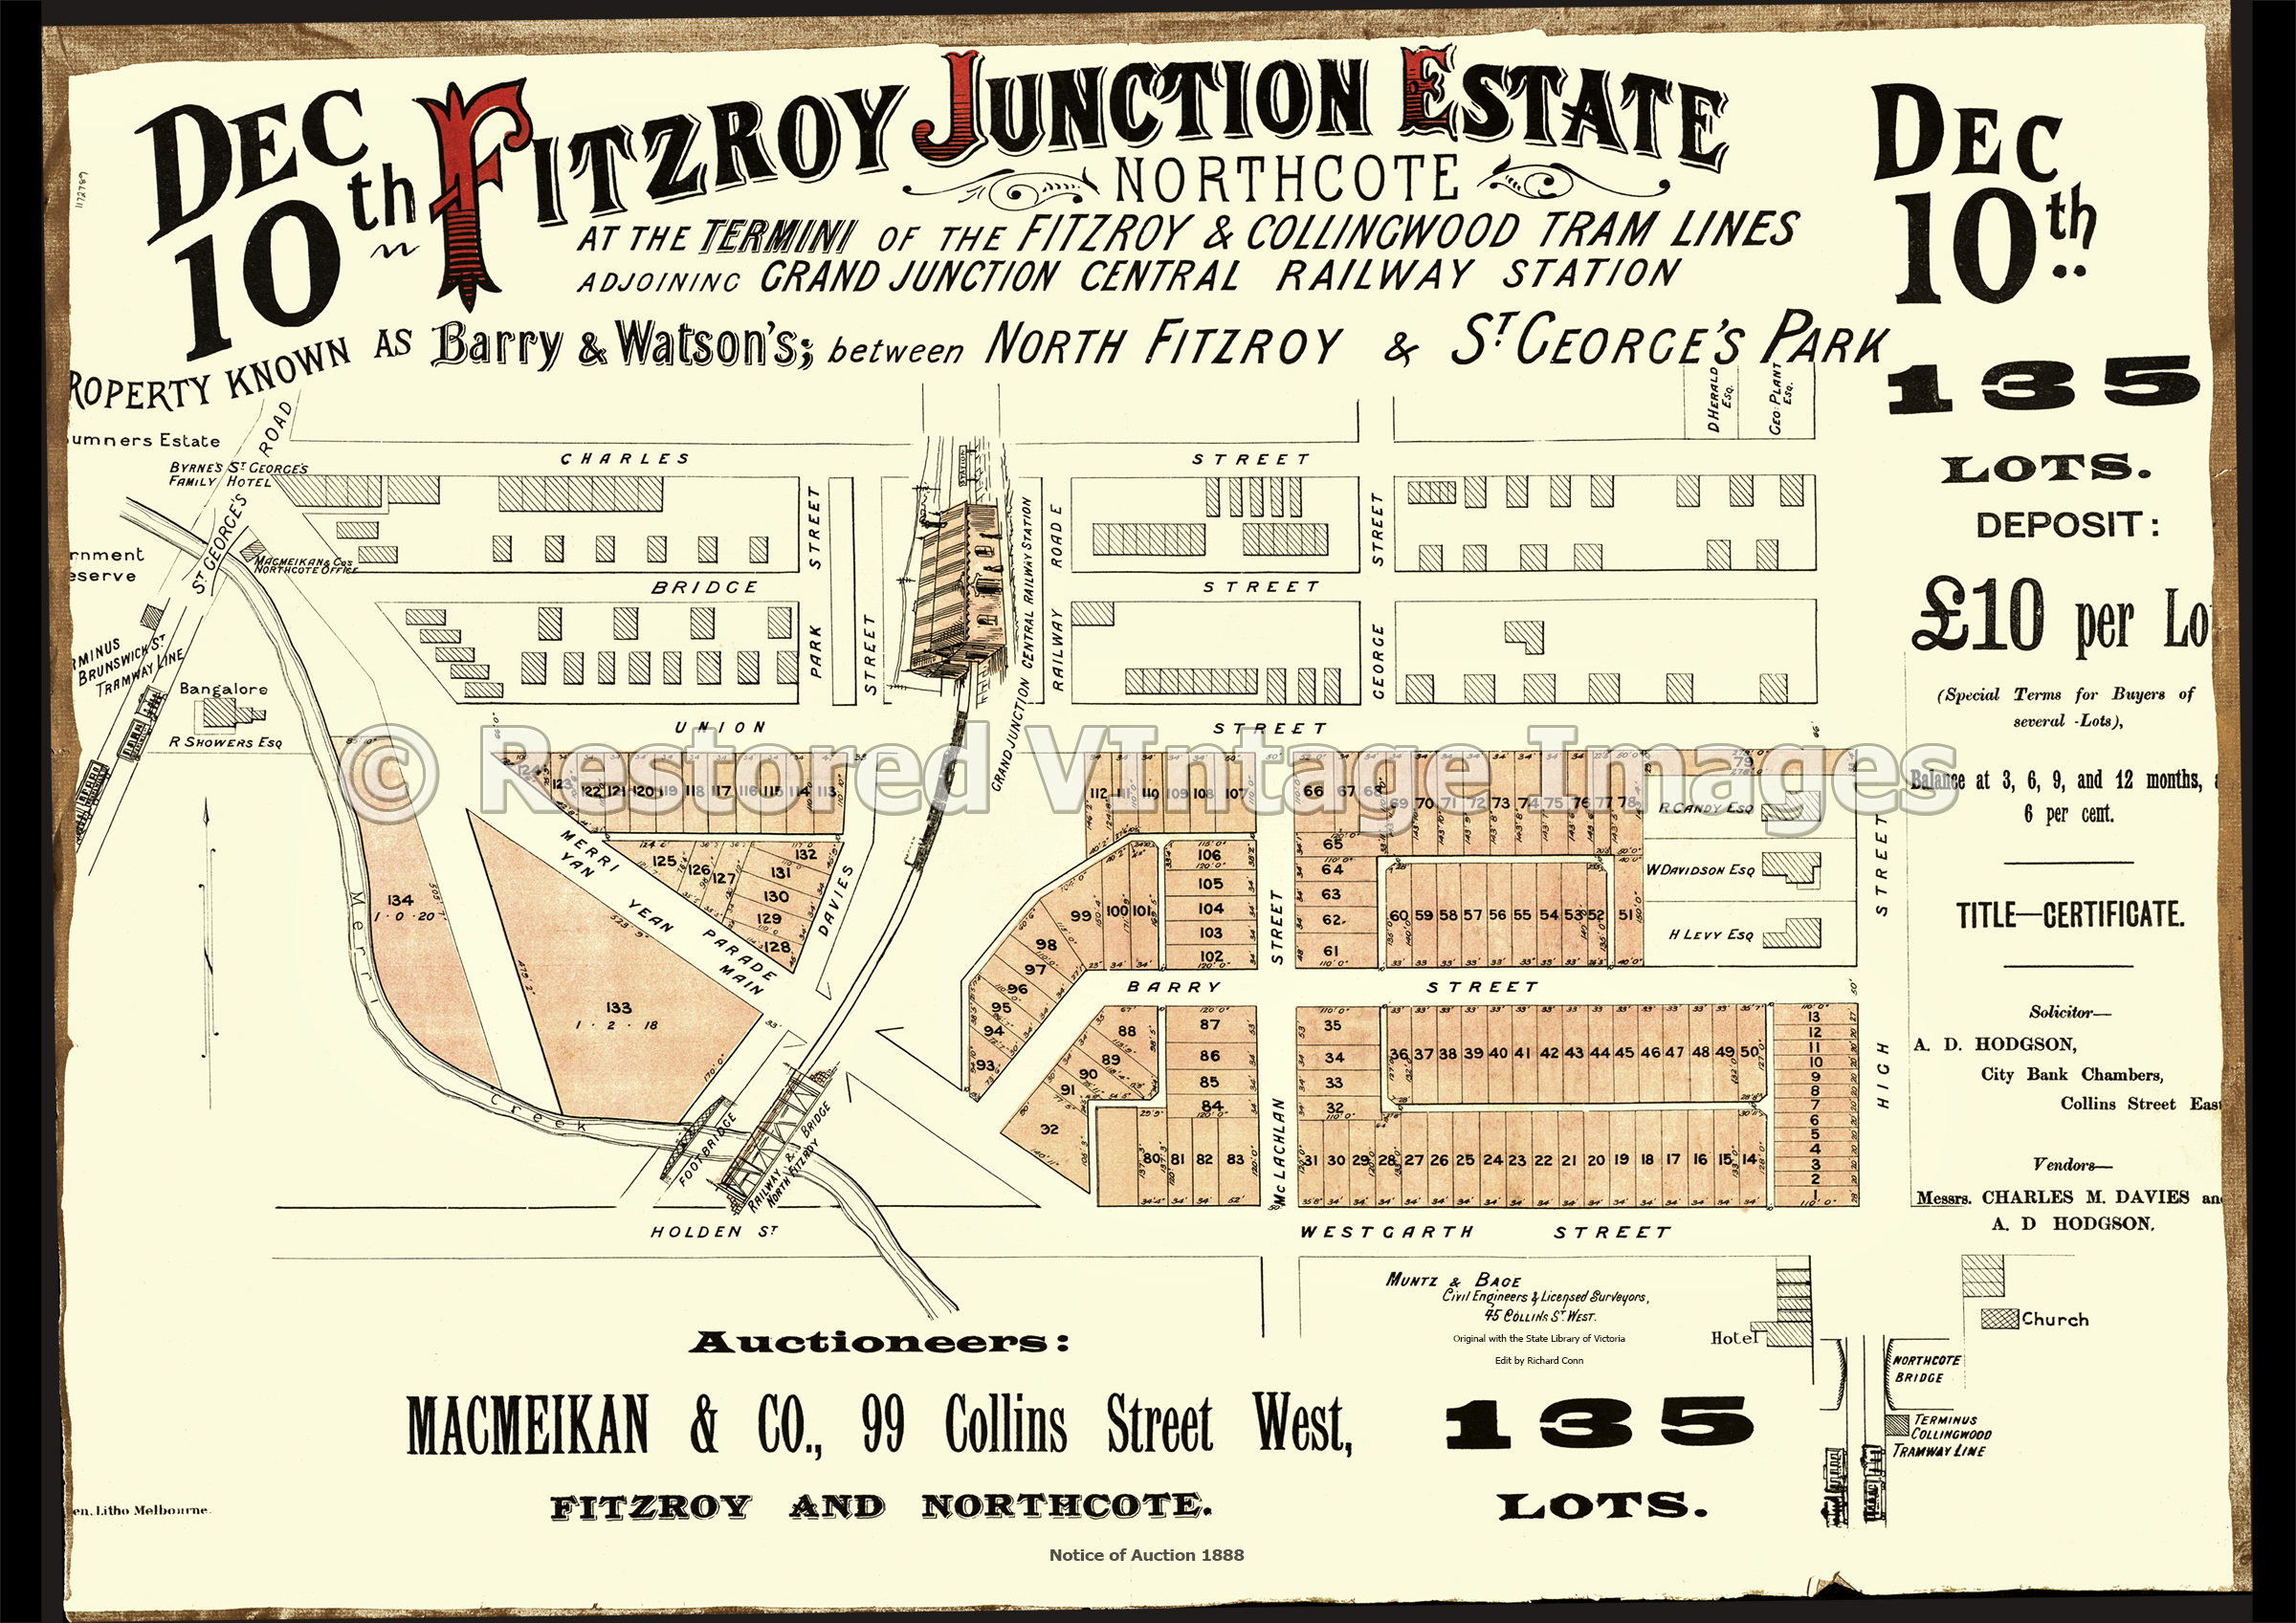 Fitzroy Junction Estate 10th December 1887 – Northcote